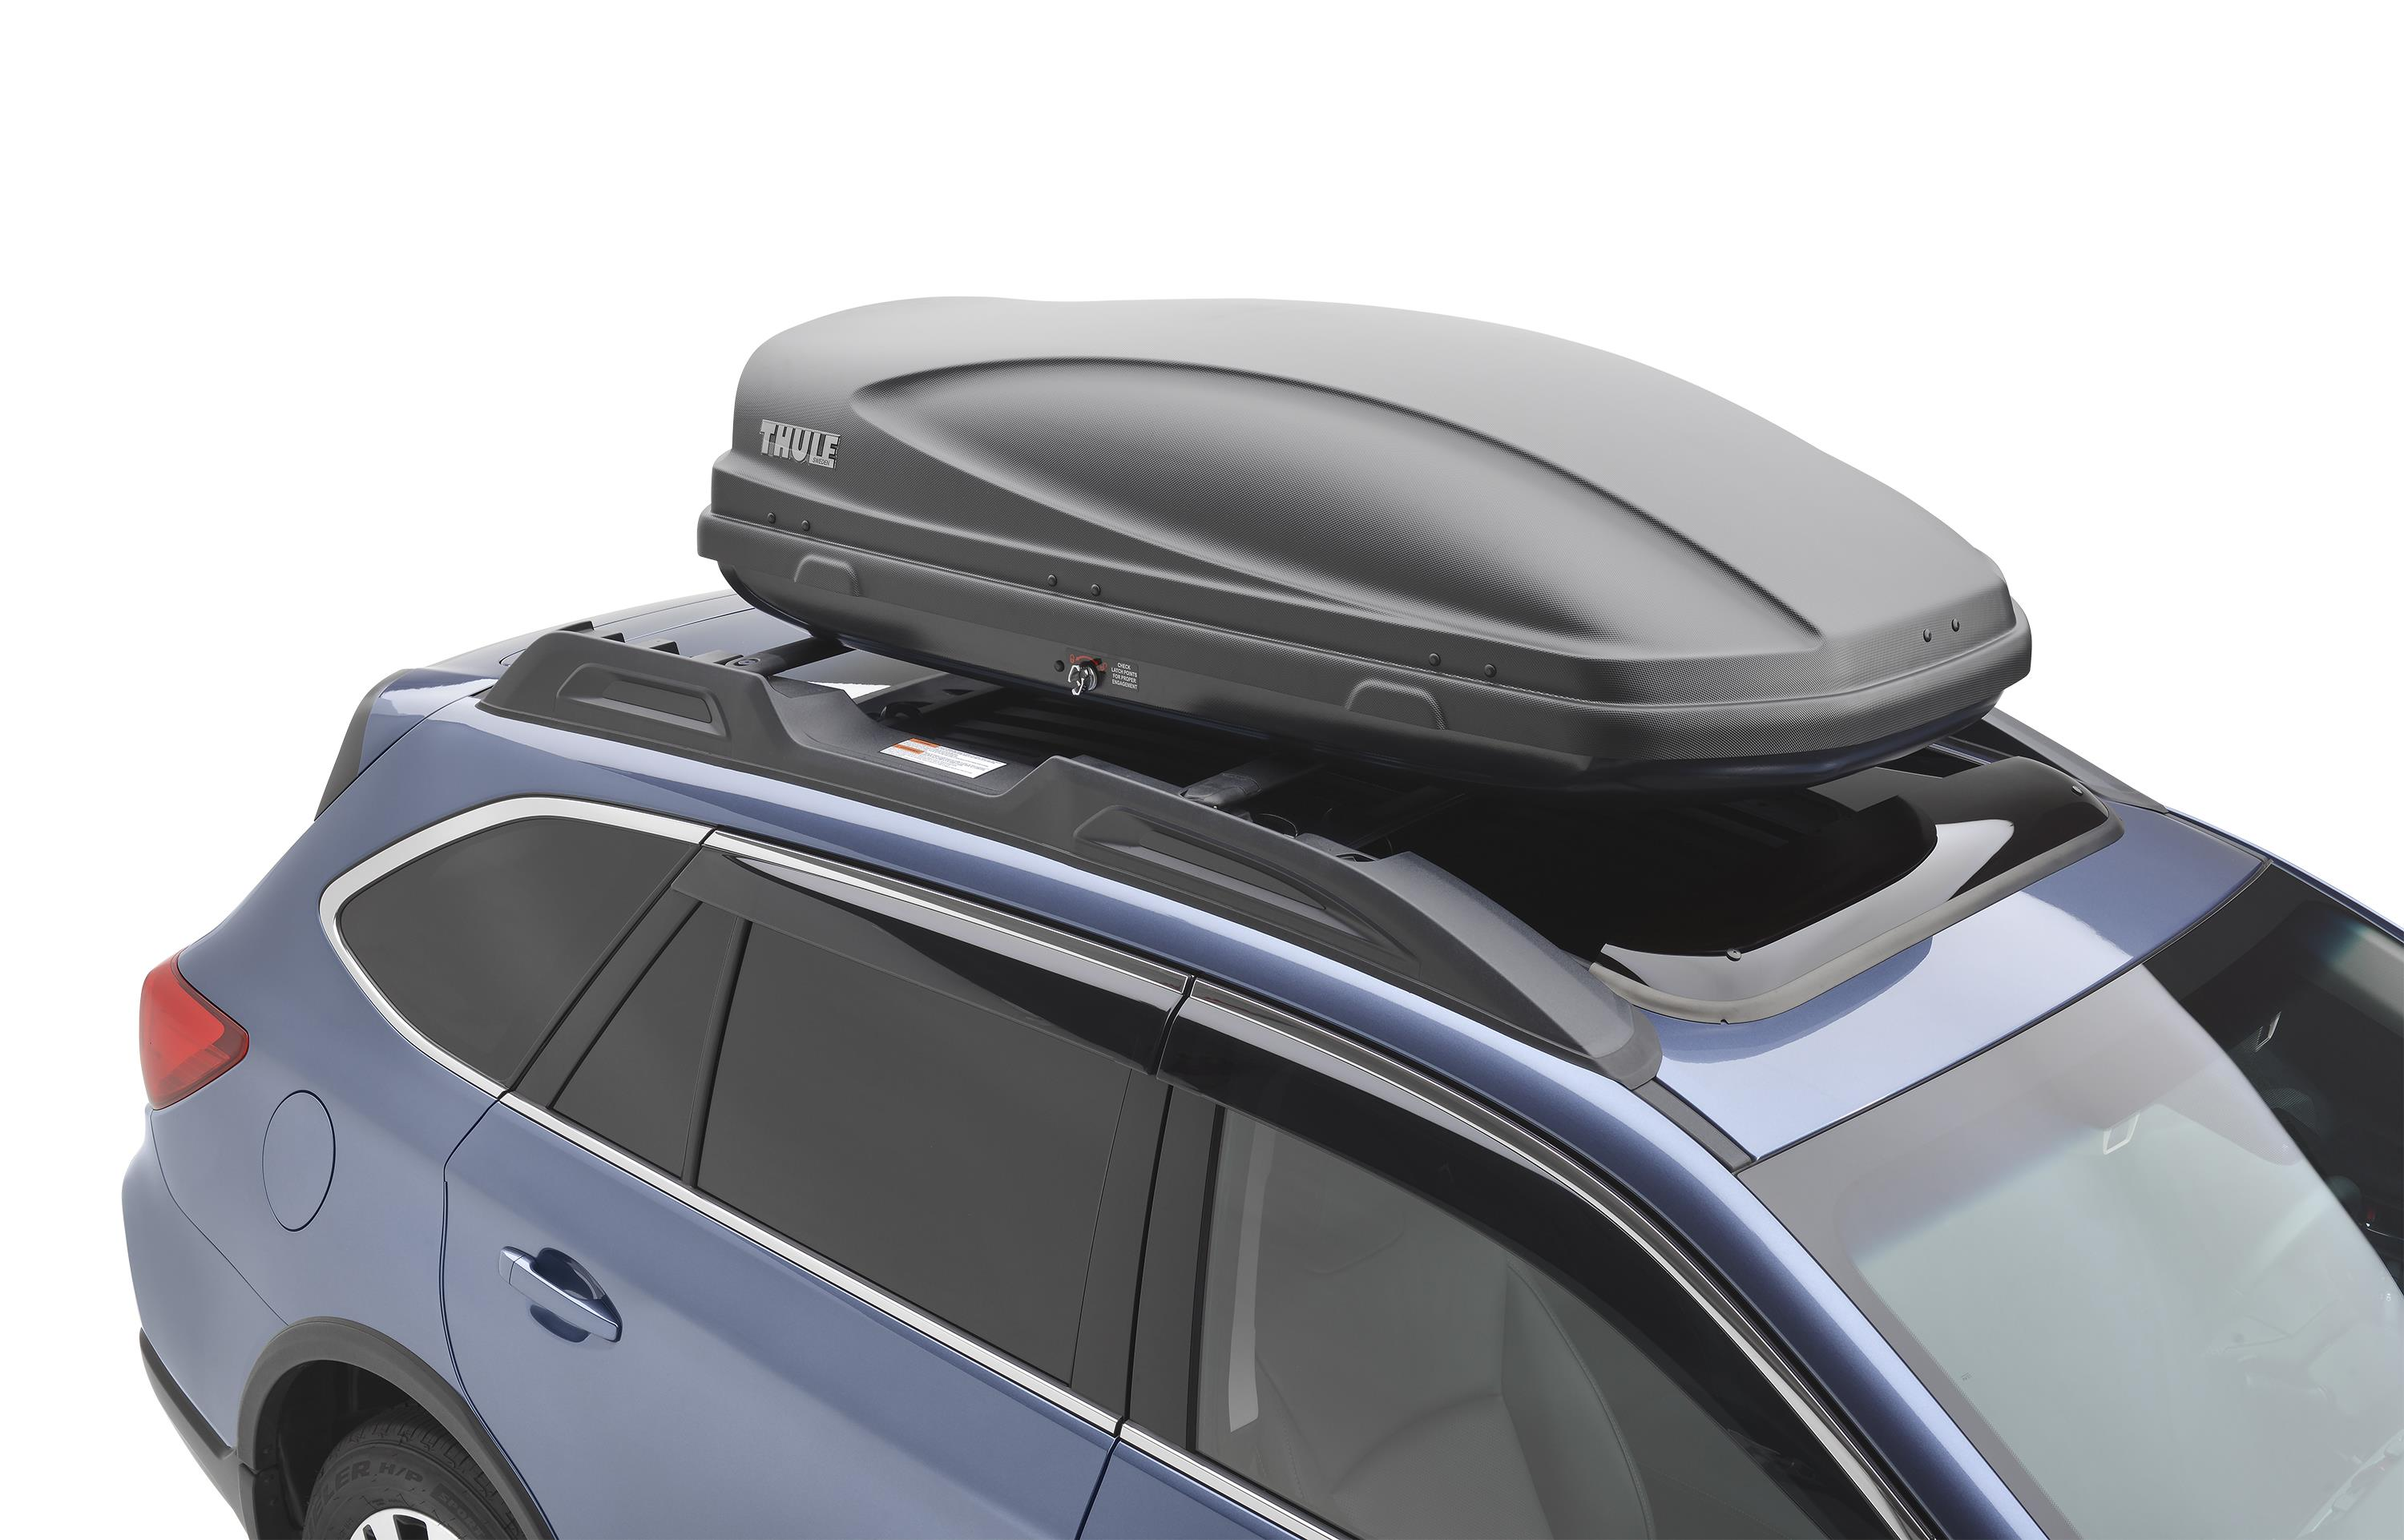 2016 Subaru Outback The roof cargo carrier provides 13 ...